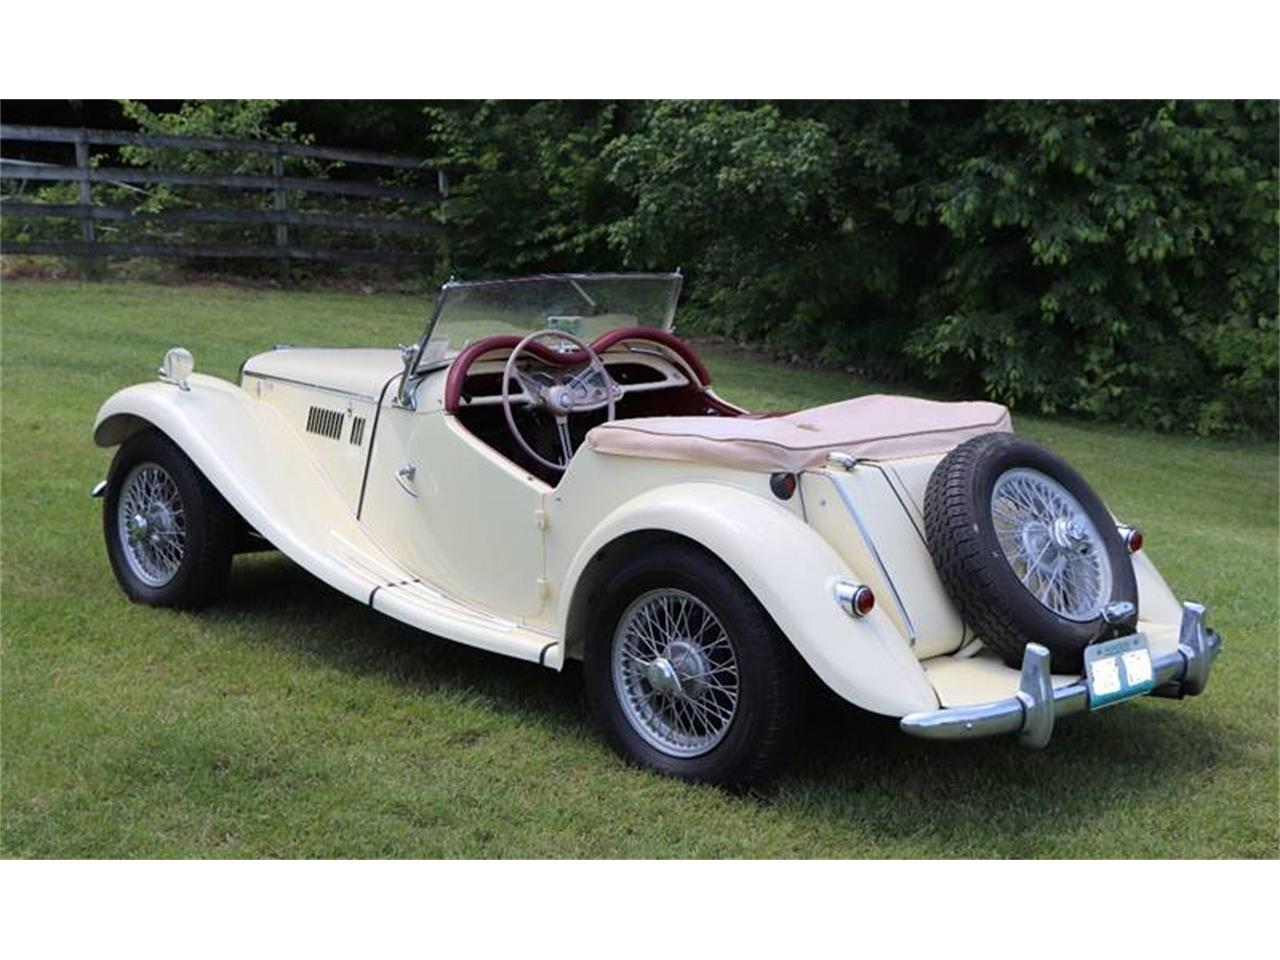 Large Picture of Classic '55 MG TF located in Missouri - $29,900.00 - QAD0